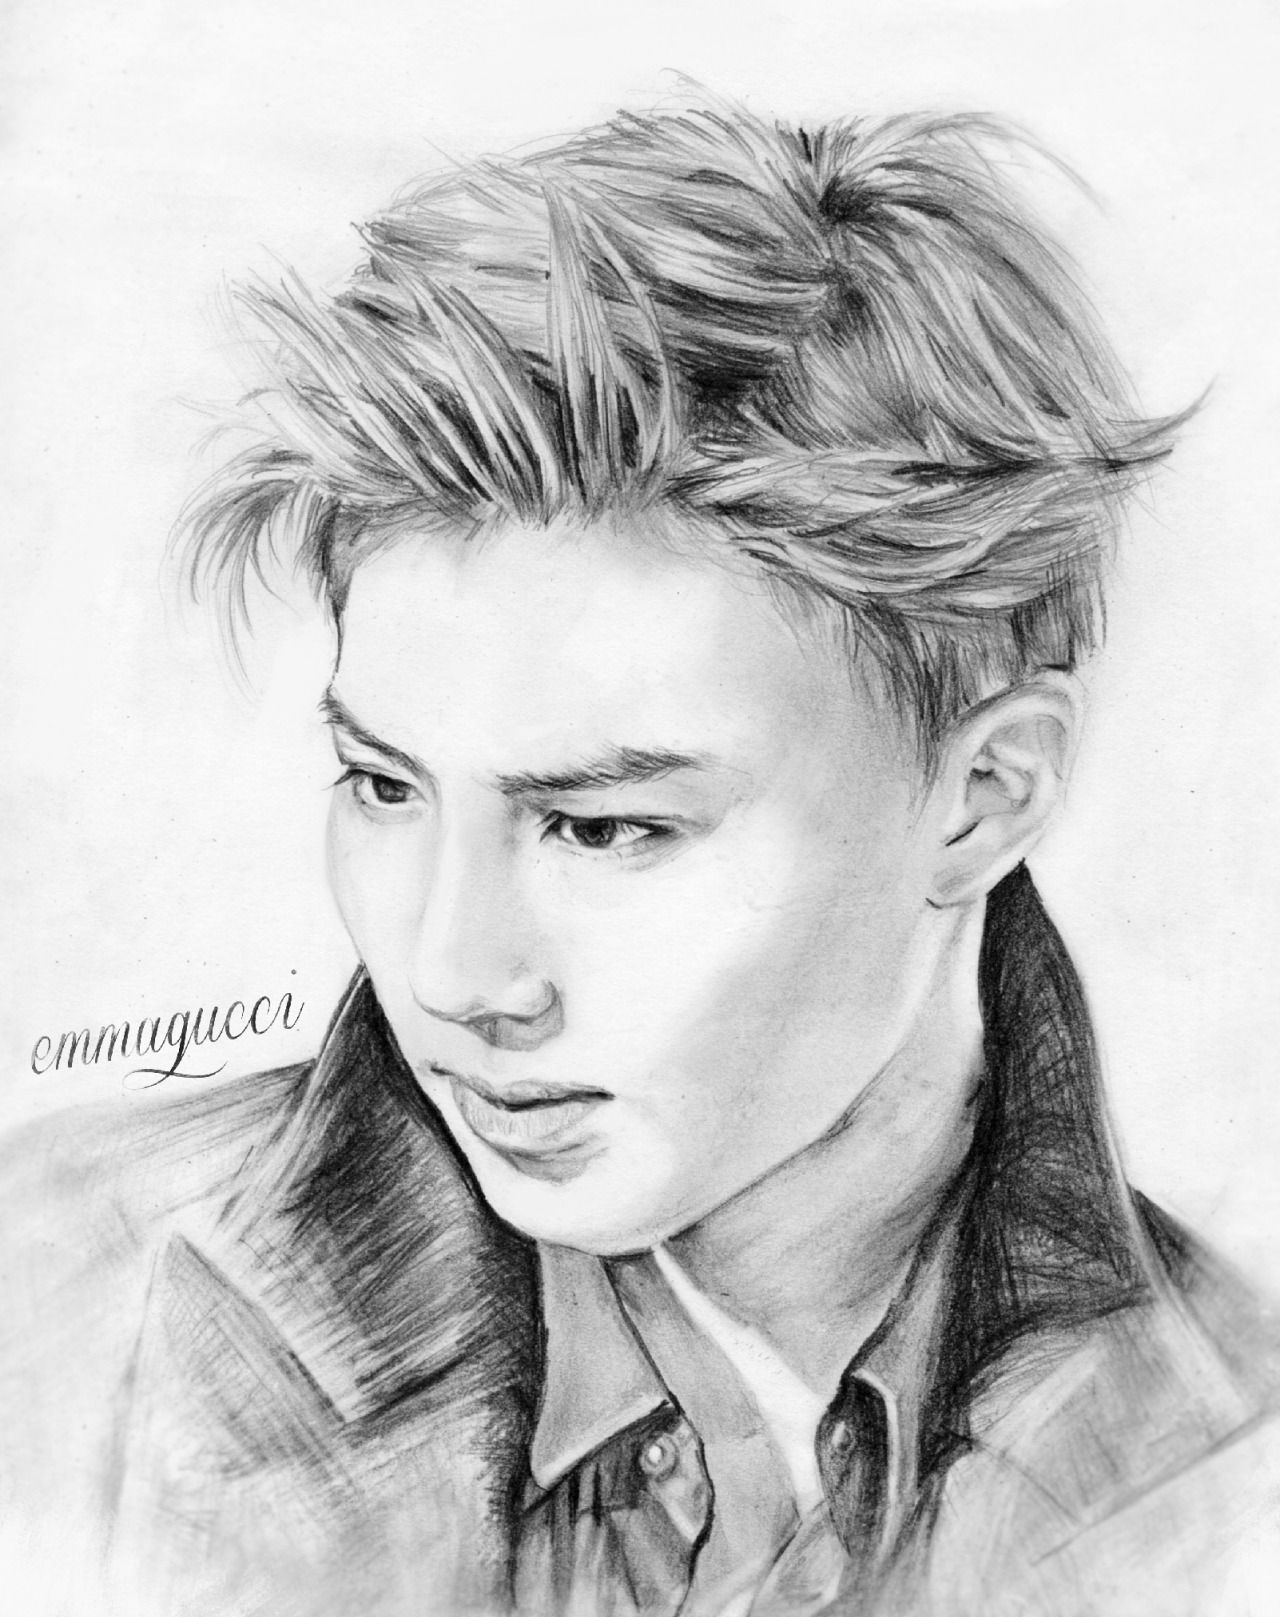 Playing with a pencil  Just a small gift for my Suho biased friend